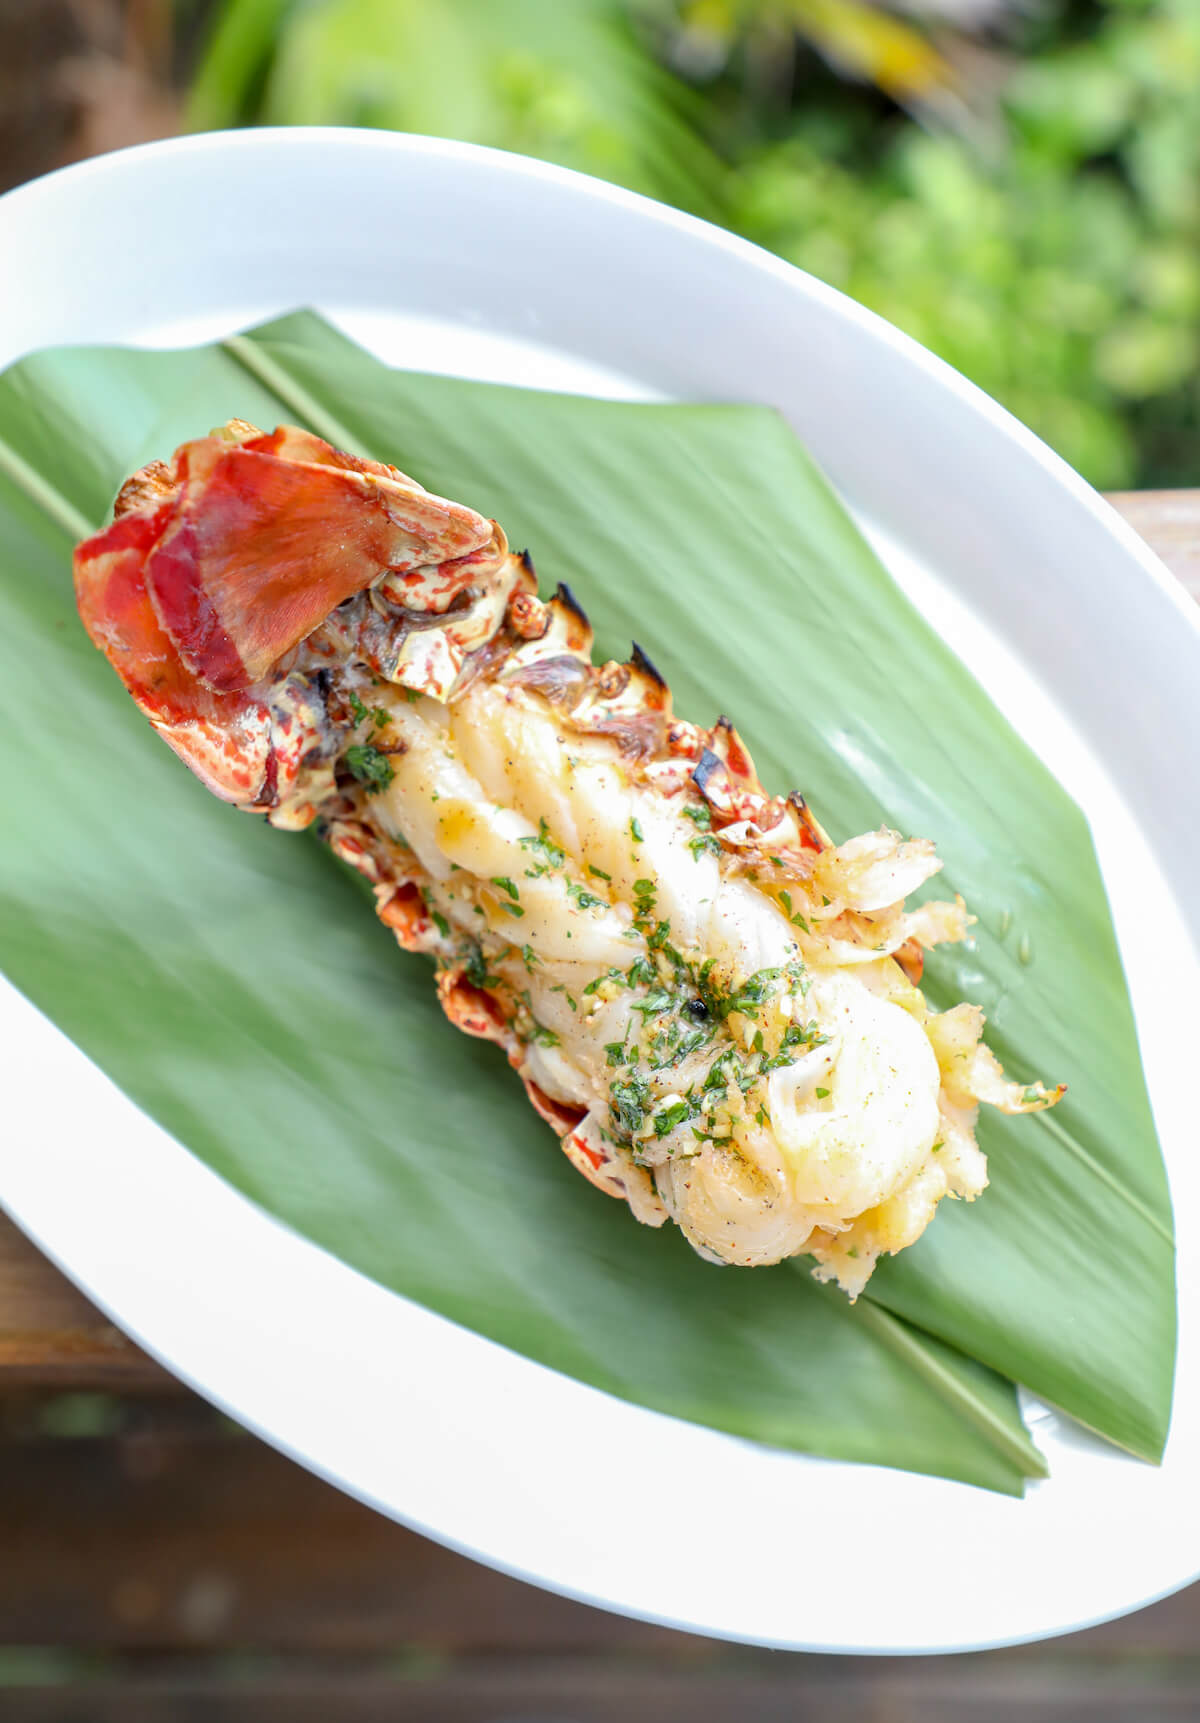 Keto Grilled Lobster Tails with Creole Butter | I Breathe I'm Hungry